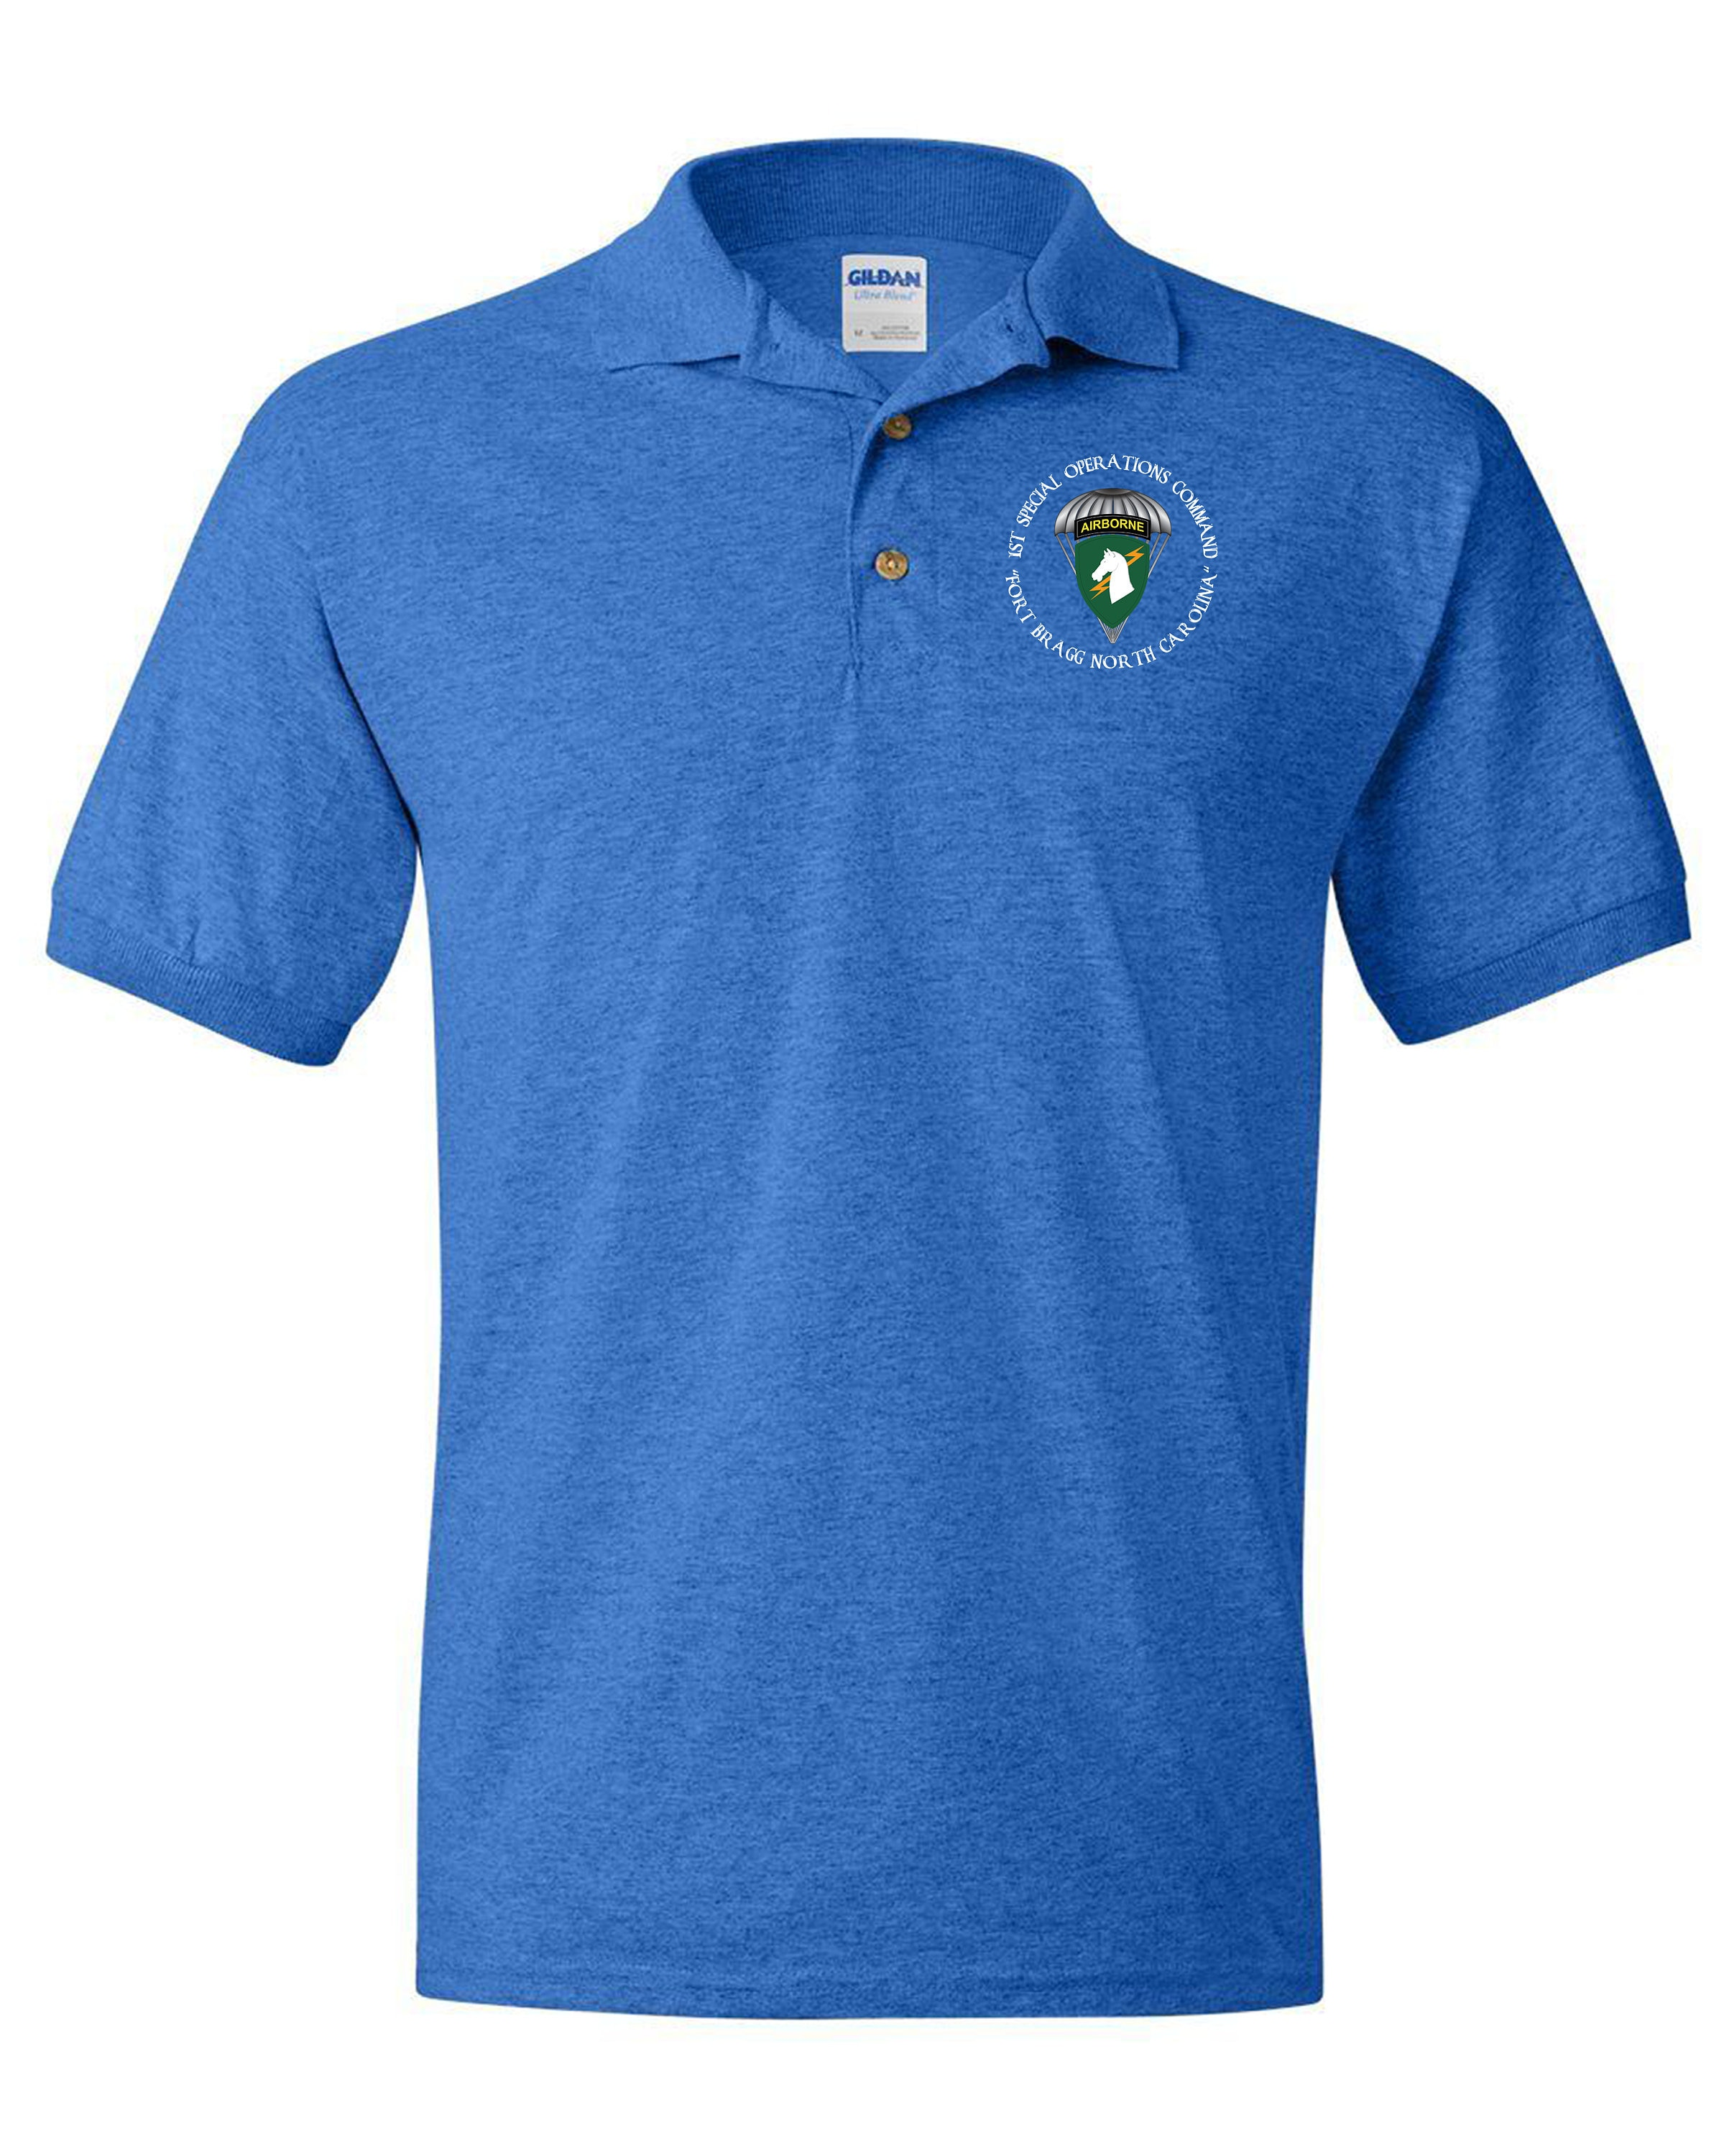 Socom Embroidered Cotton Polo Shirt 6859 Etsy